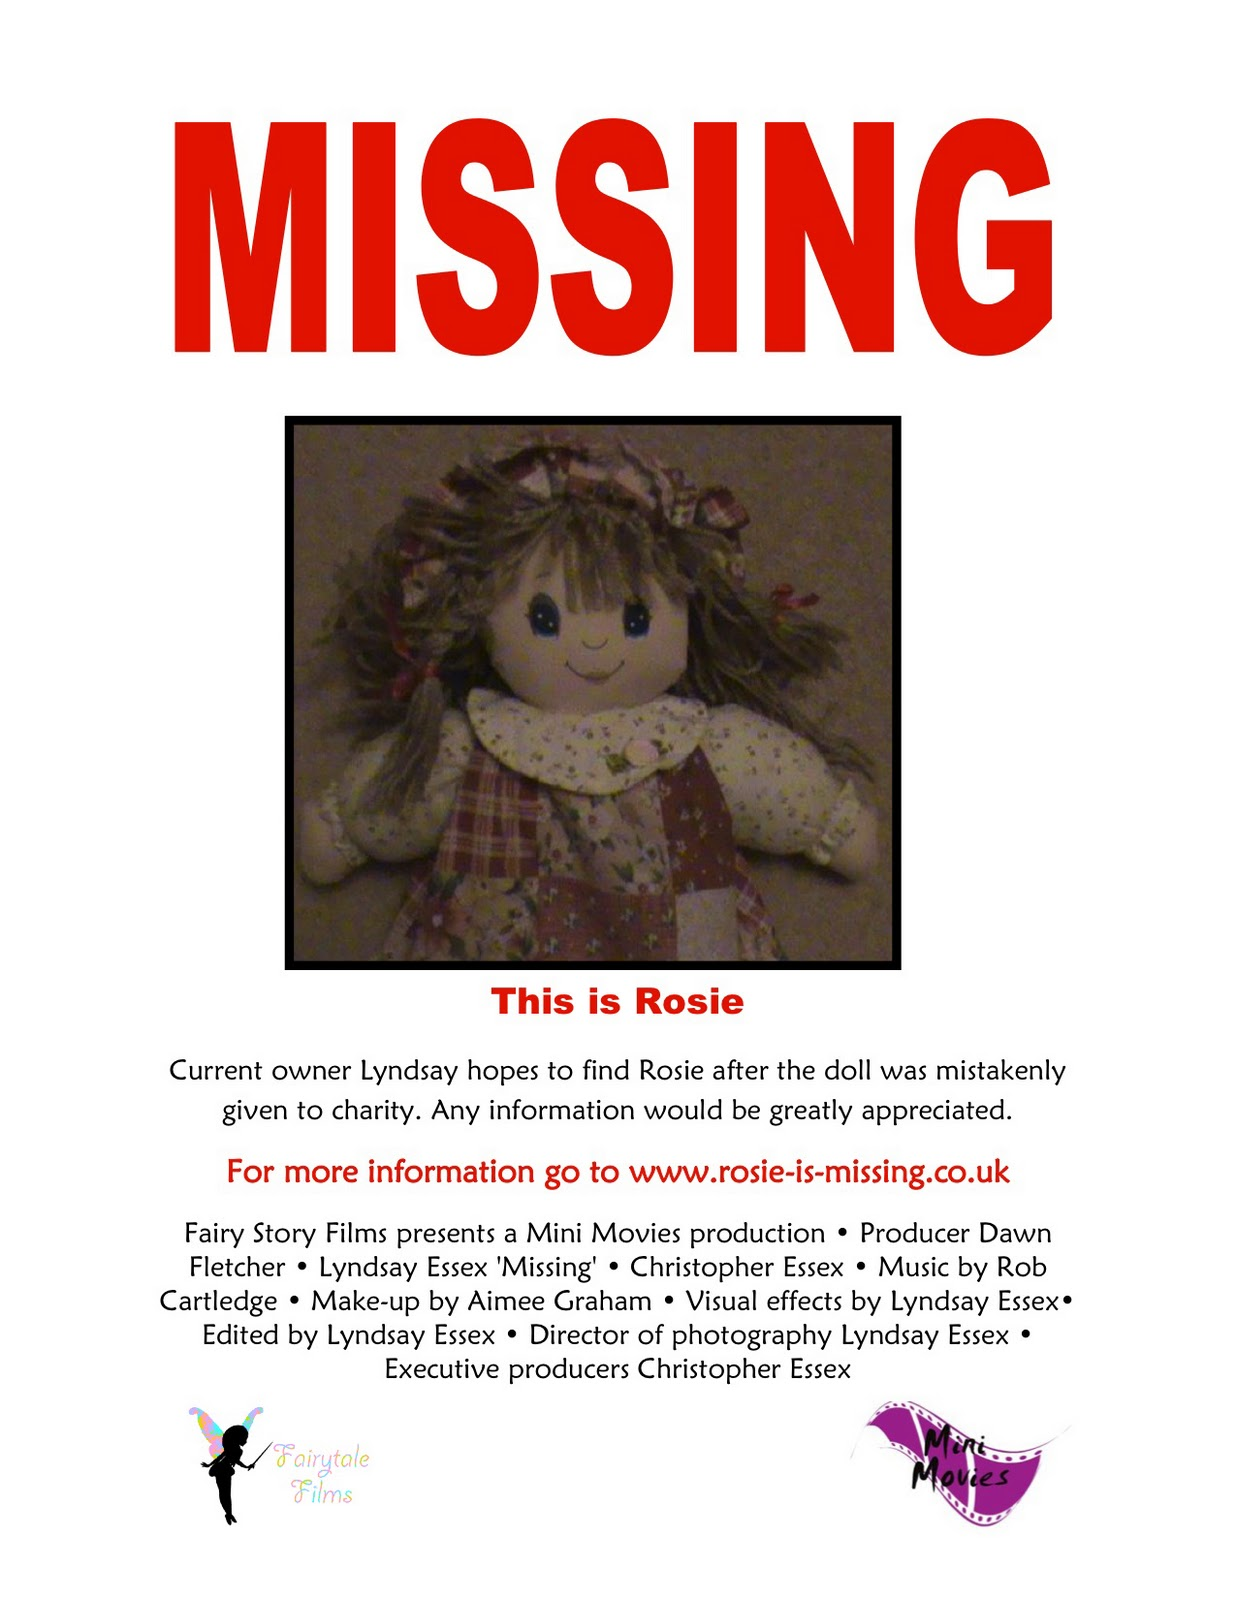 LyndsayOutLouds A2 Media Missing poster Ideas – Make a Missing Poster